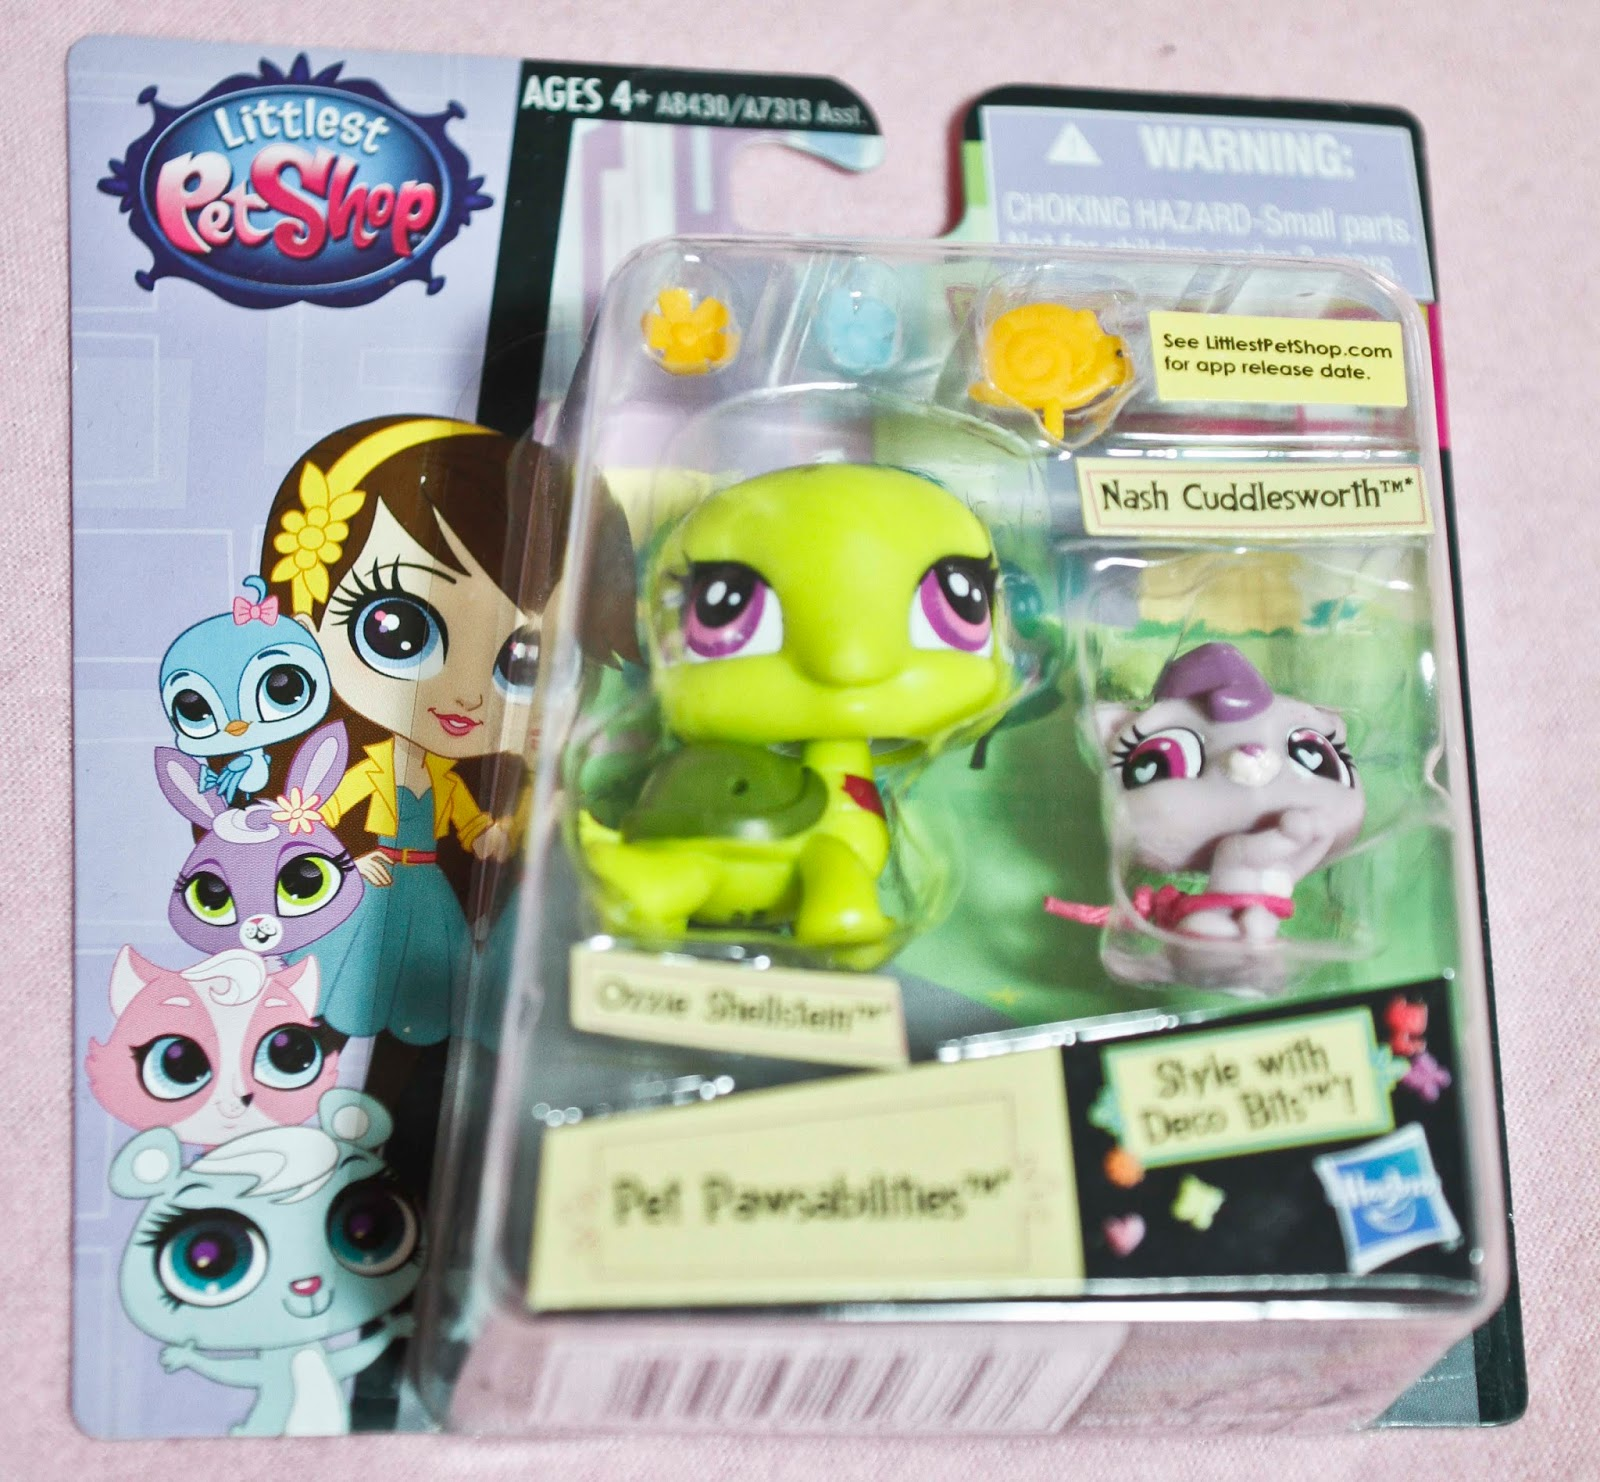 completely unopened package of littlest pets shop pawsabiliteis set including nash cuddles worth and ozzie shellstein